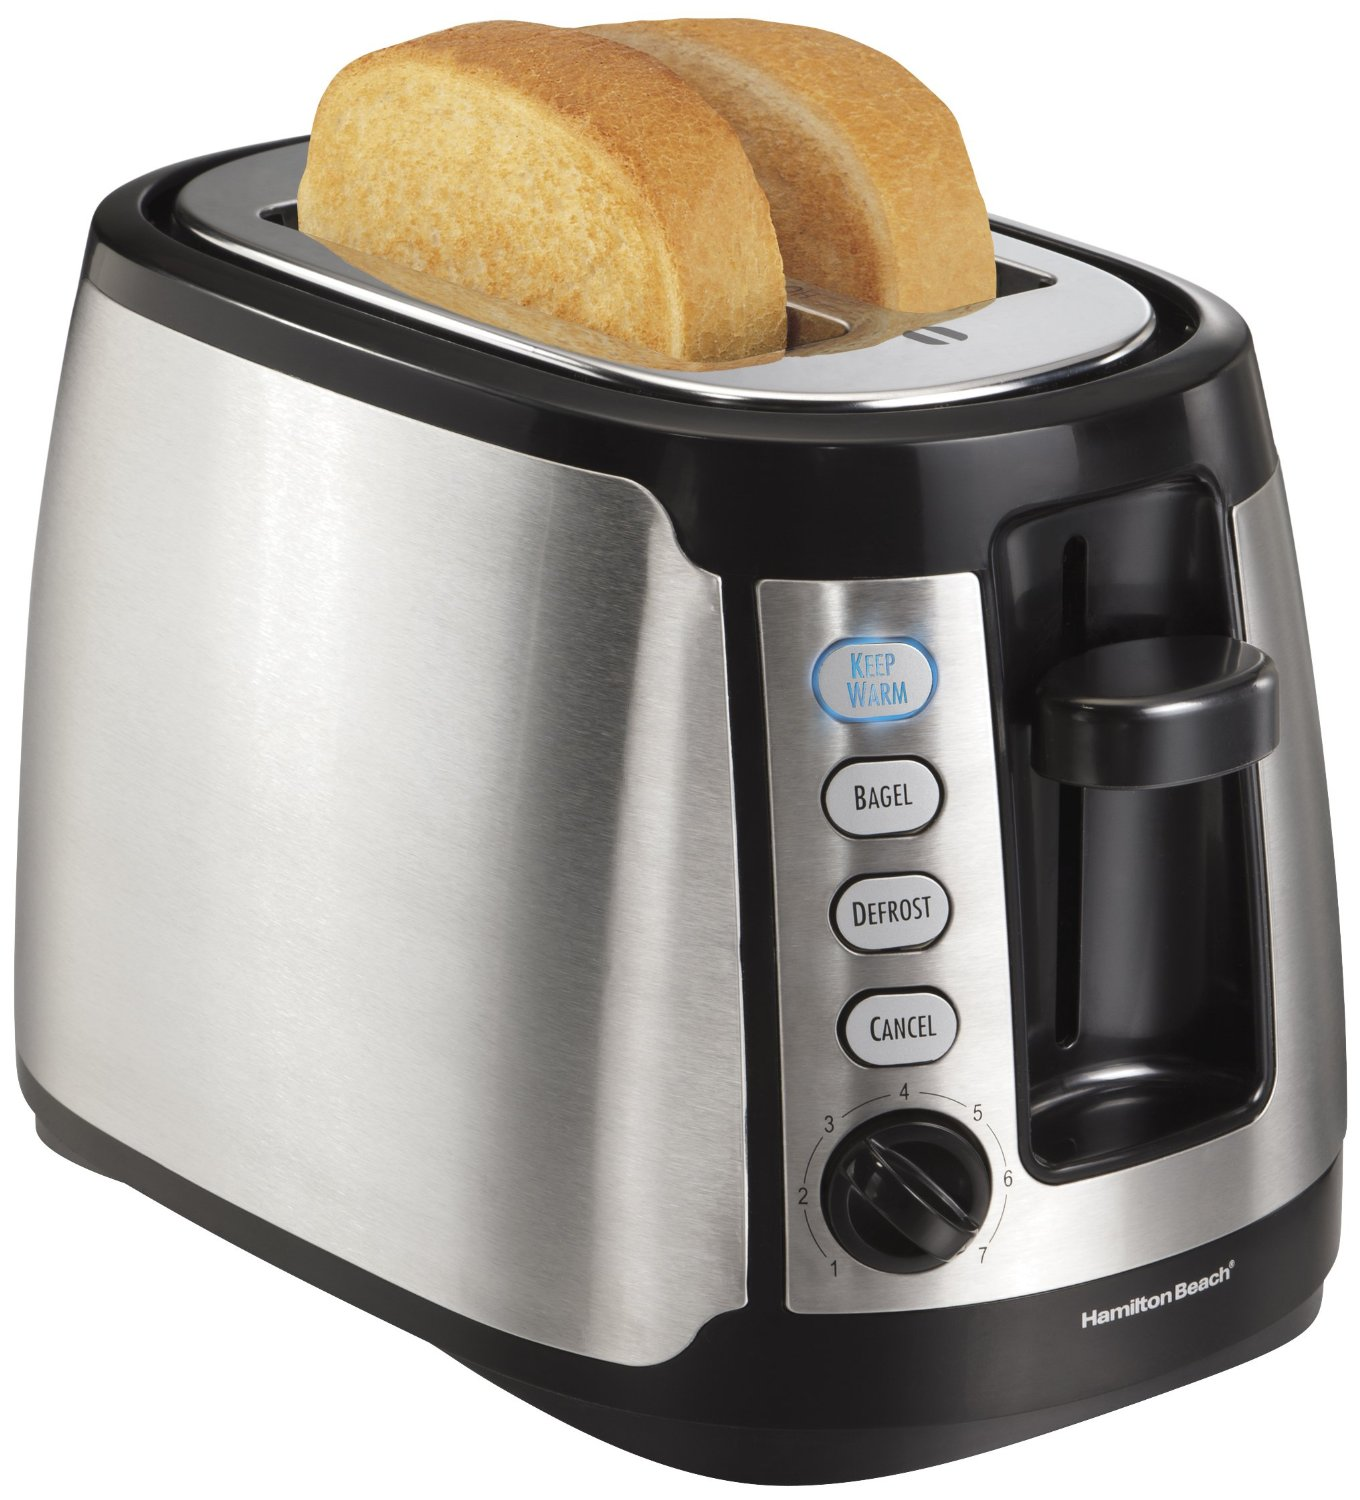 http://riddles-for-kids.org/wp-content/uploads/2016/05/Toaster-Riddles.jpg